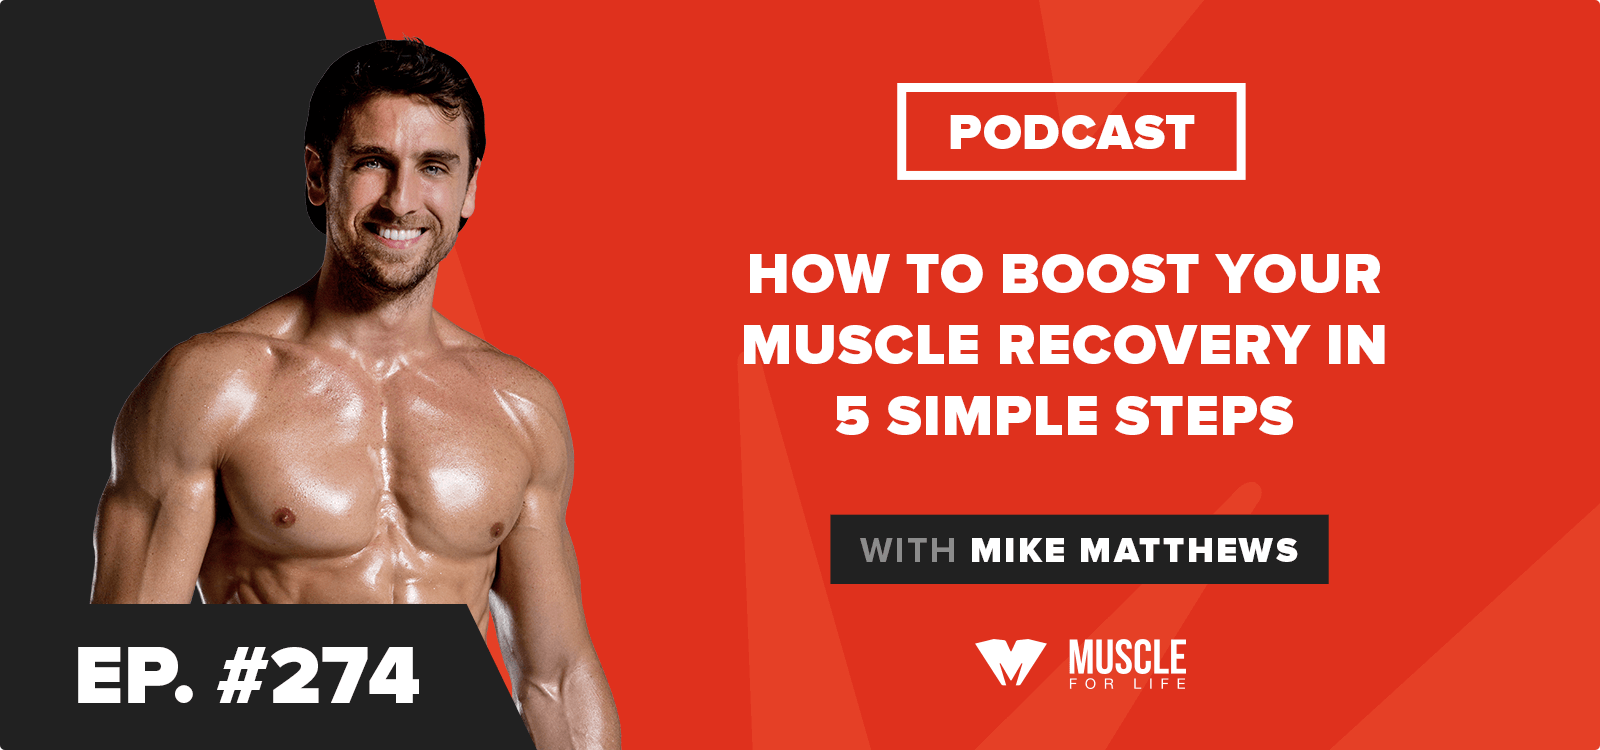 How to Boost Your Muscle Recovery in 5 Simple Steps